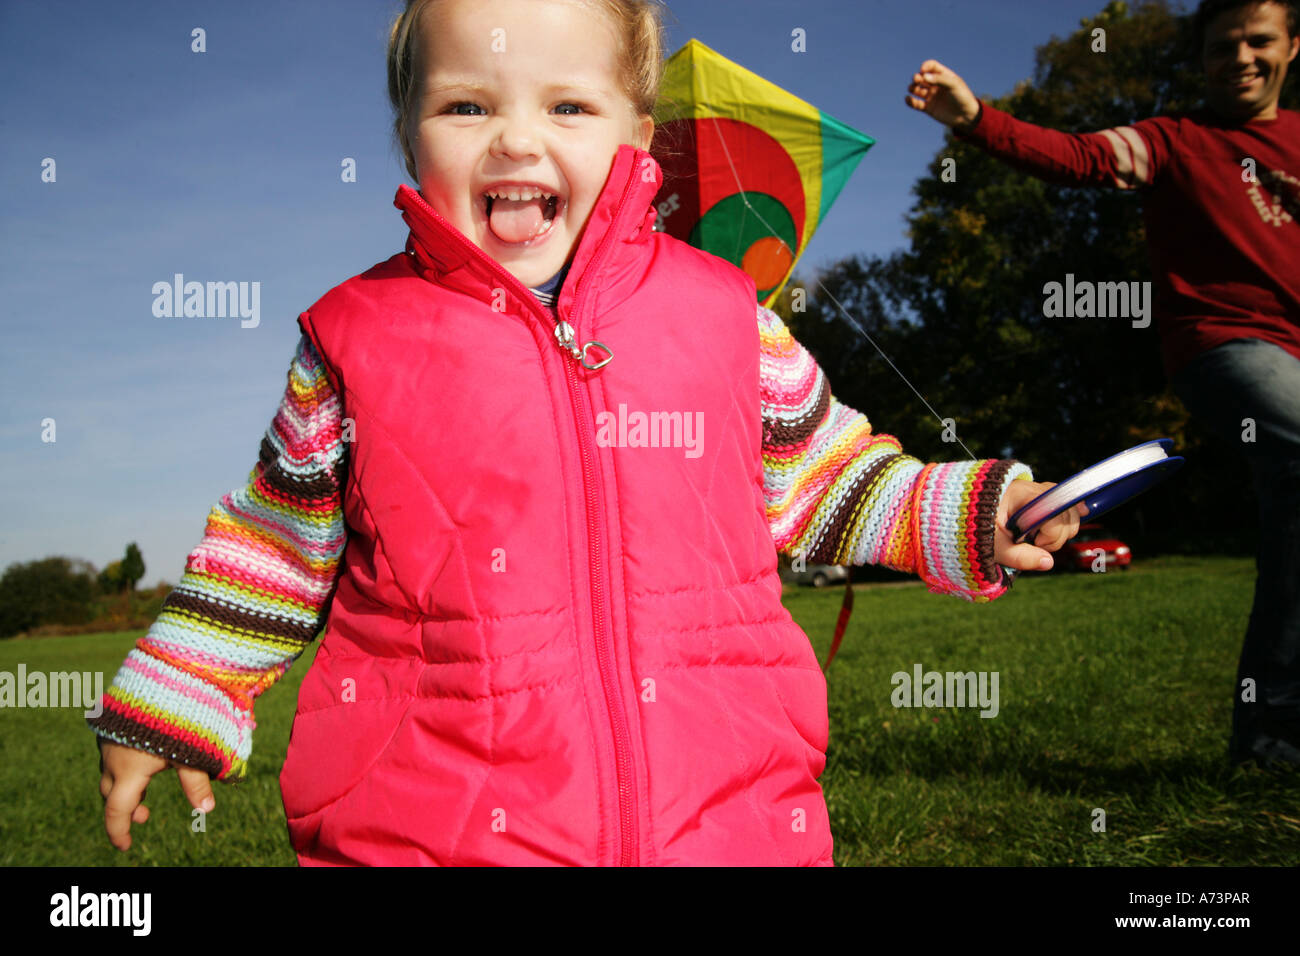 father and daughter playing with kite - Stock Image